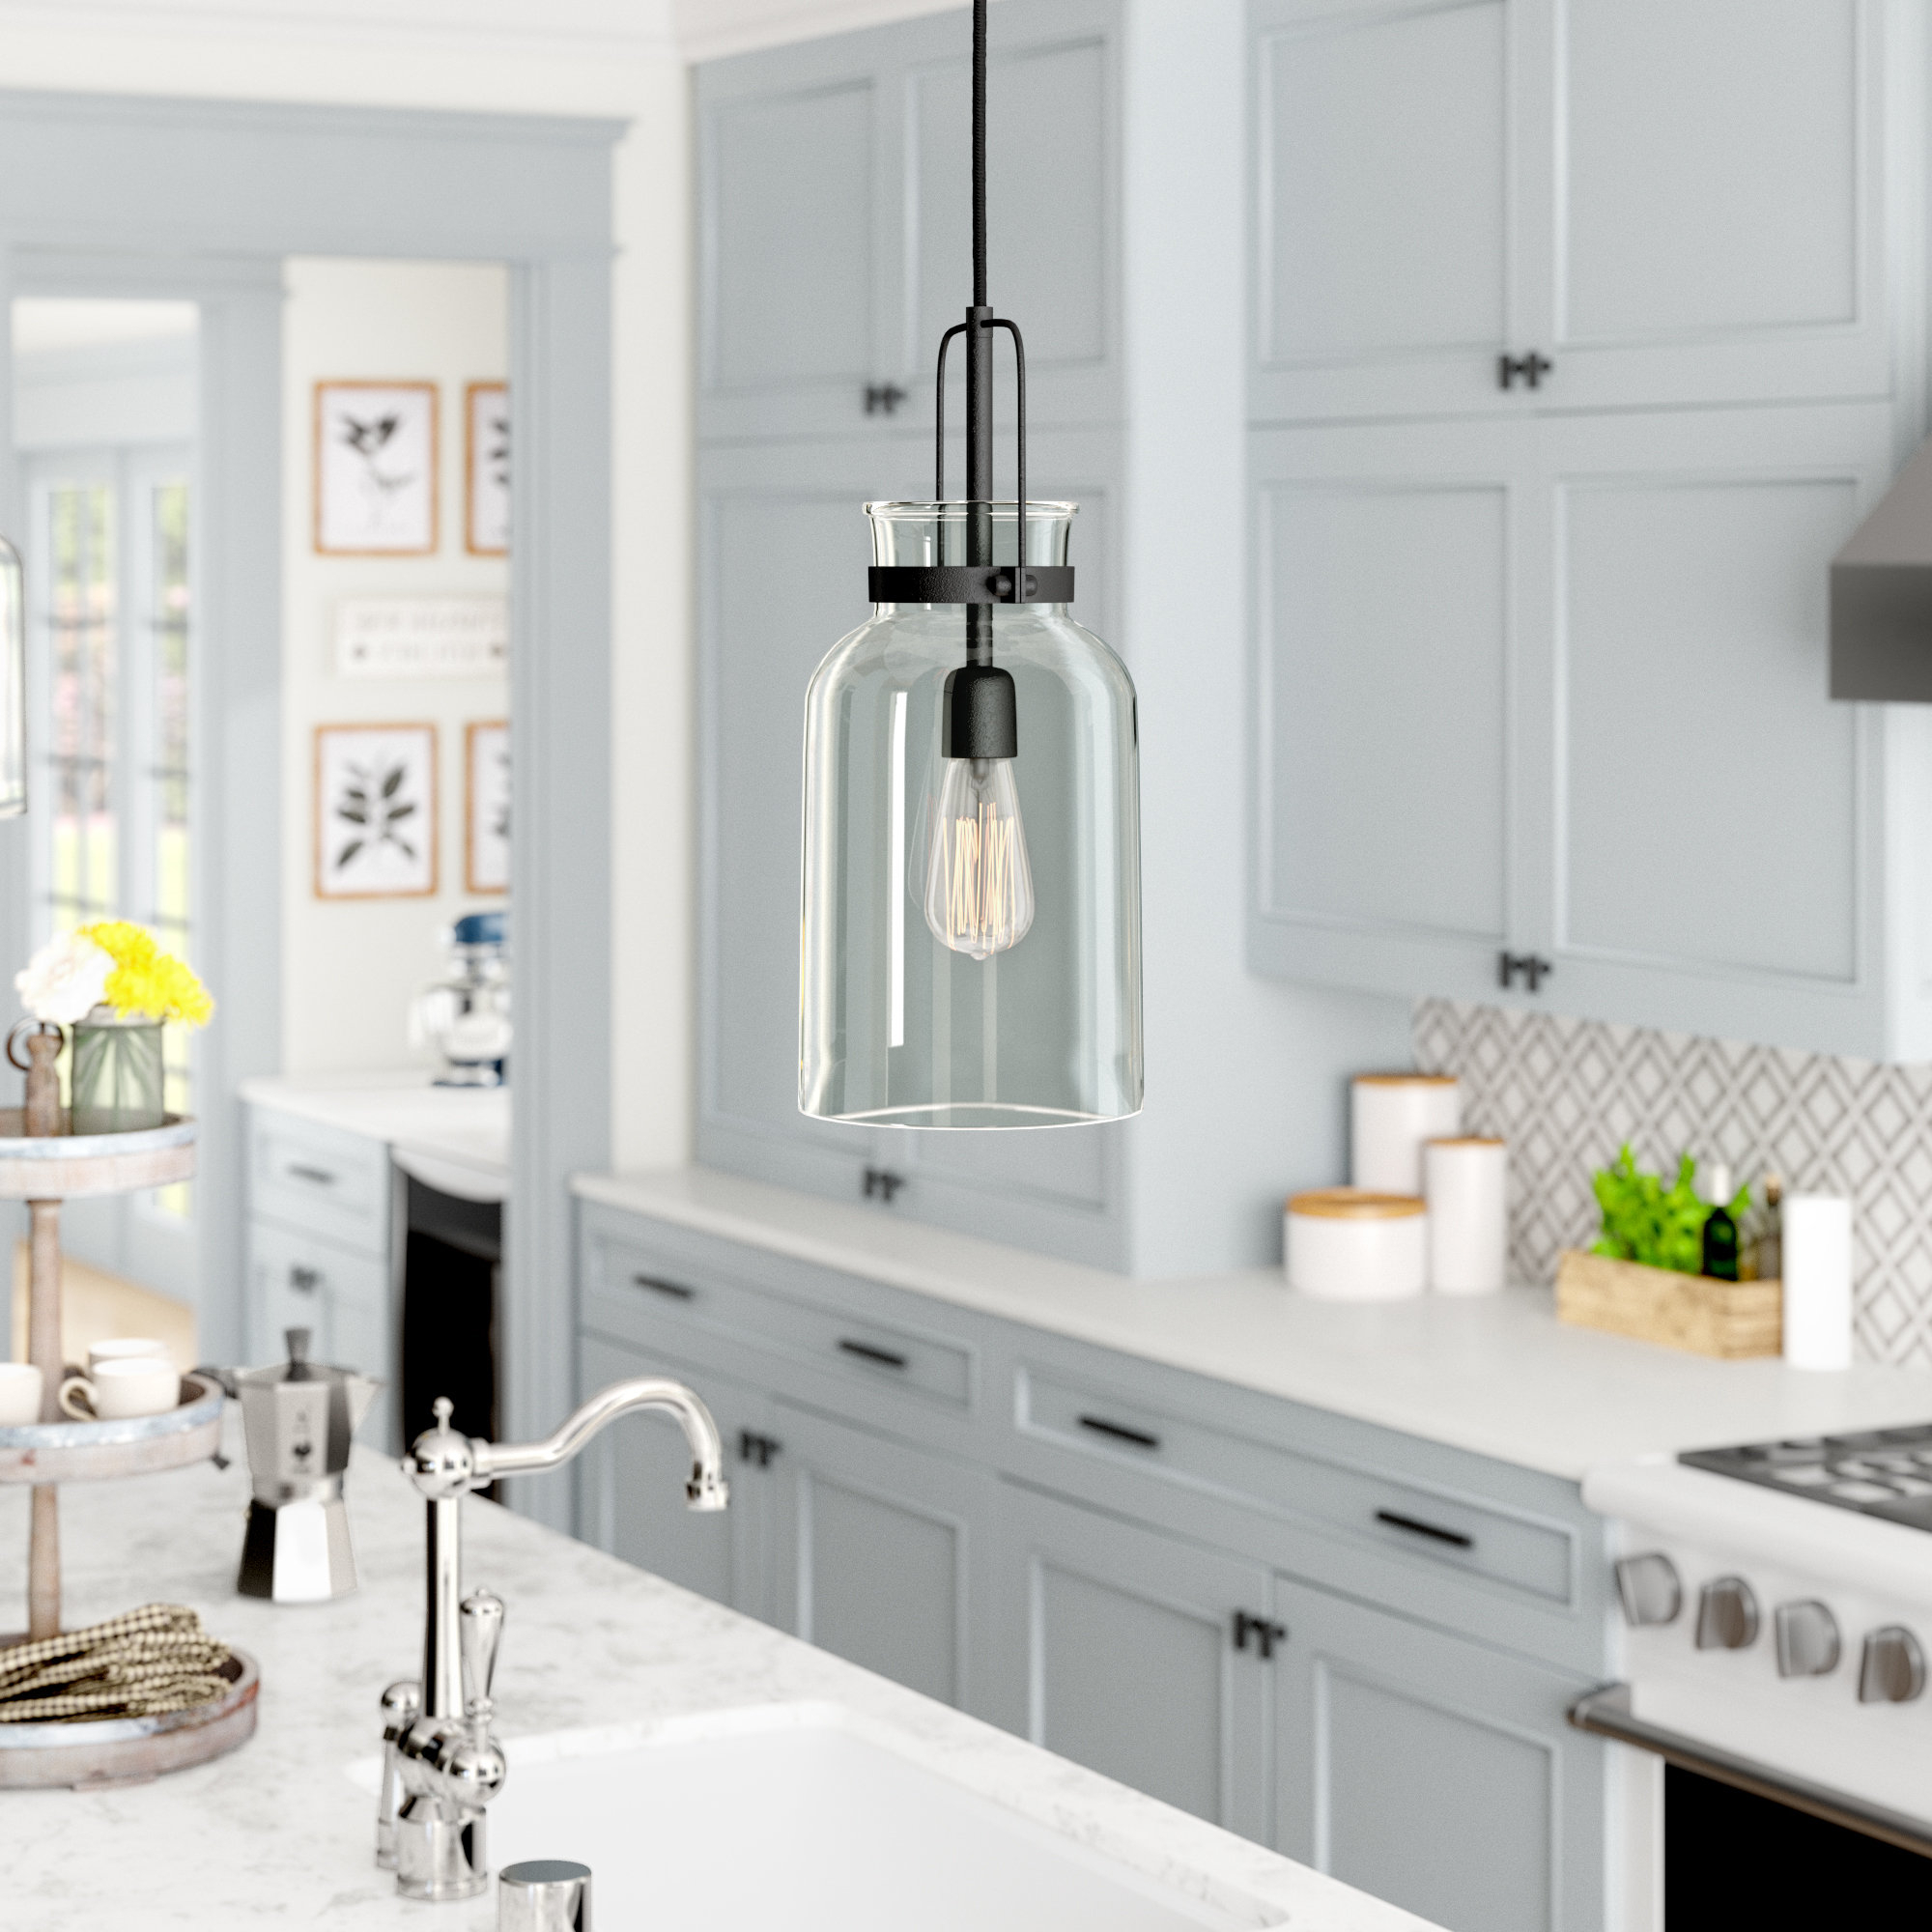 Laurel Foundry Modern Farmhouse Nouvelle 1 Light Single Jar With Famous Clematite 1 Light Single Jar Pendants (View 11 of 20)